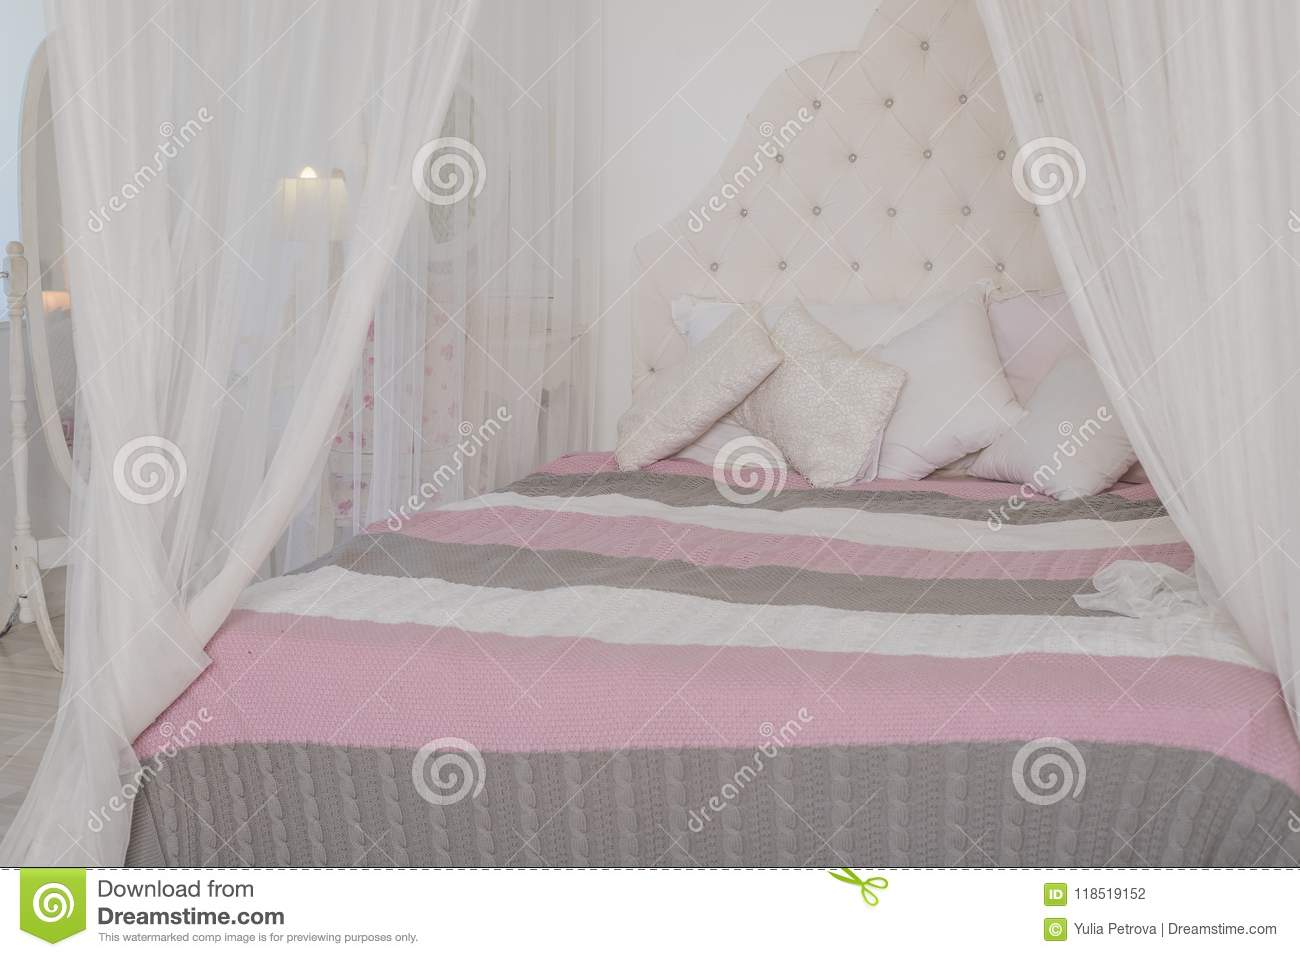 Cozy Bedroom In Light Pastel Colors A Large Four Poster Bed With Pillows Scandinavian Simplicity Design Eco Loft Stock Photo Image Of Beautiful Classic 118519152